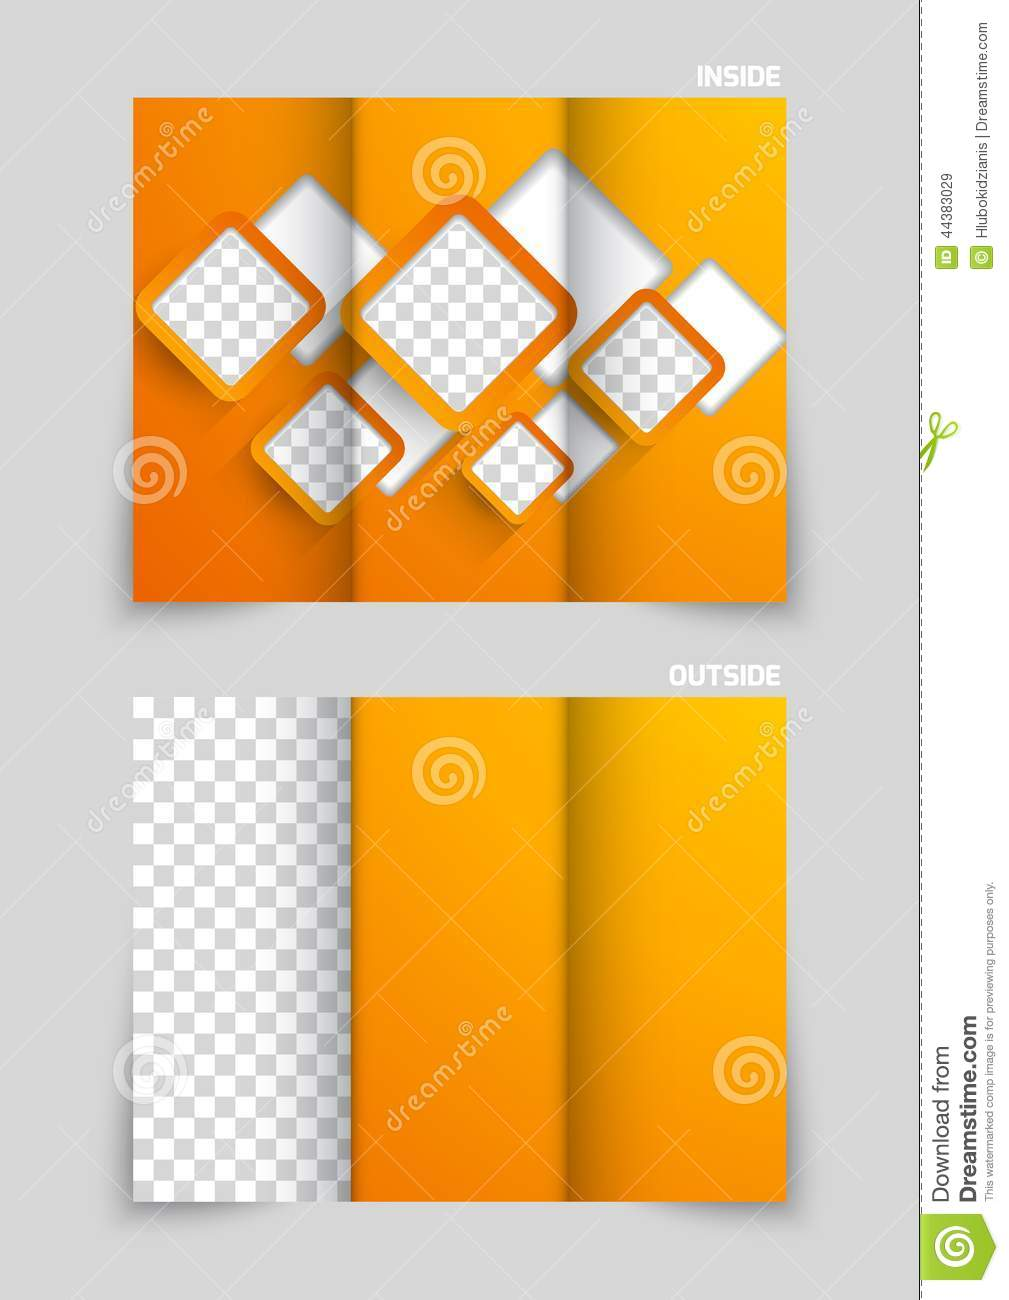 Trifold Brochure Template Design Stock Vector Illustration Of - Fold out brochure template